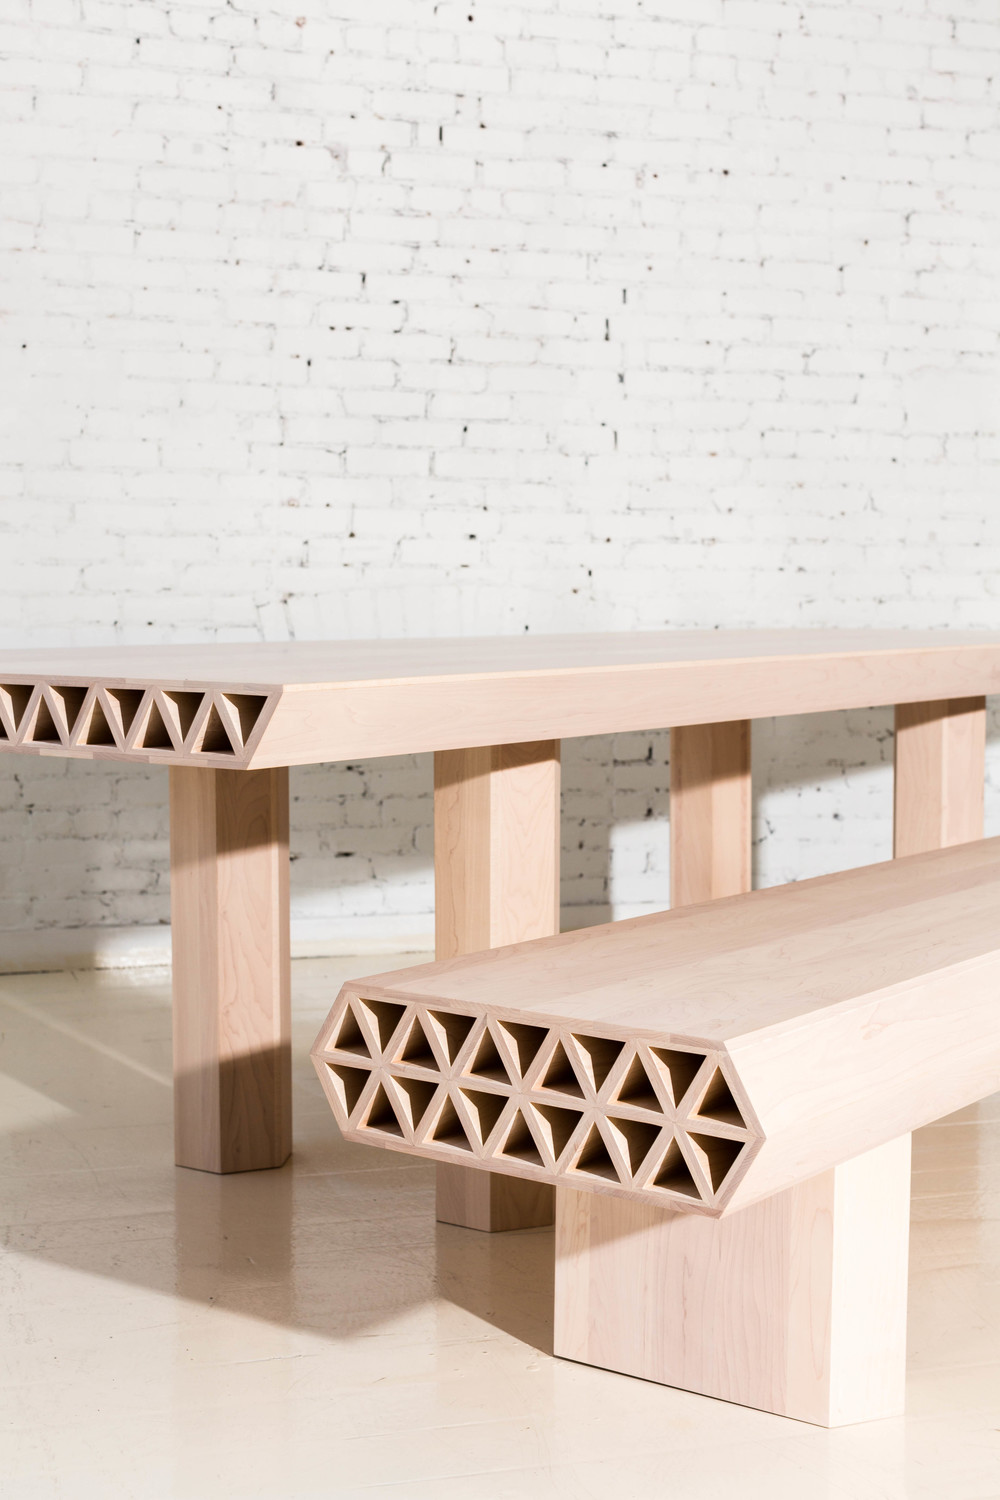 The  Assemblage Wood Dining Table and Bench , from 'Qualities of Material' by Fort Standard